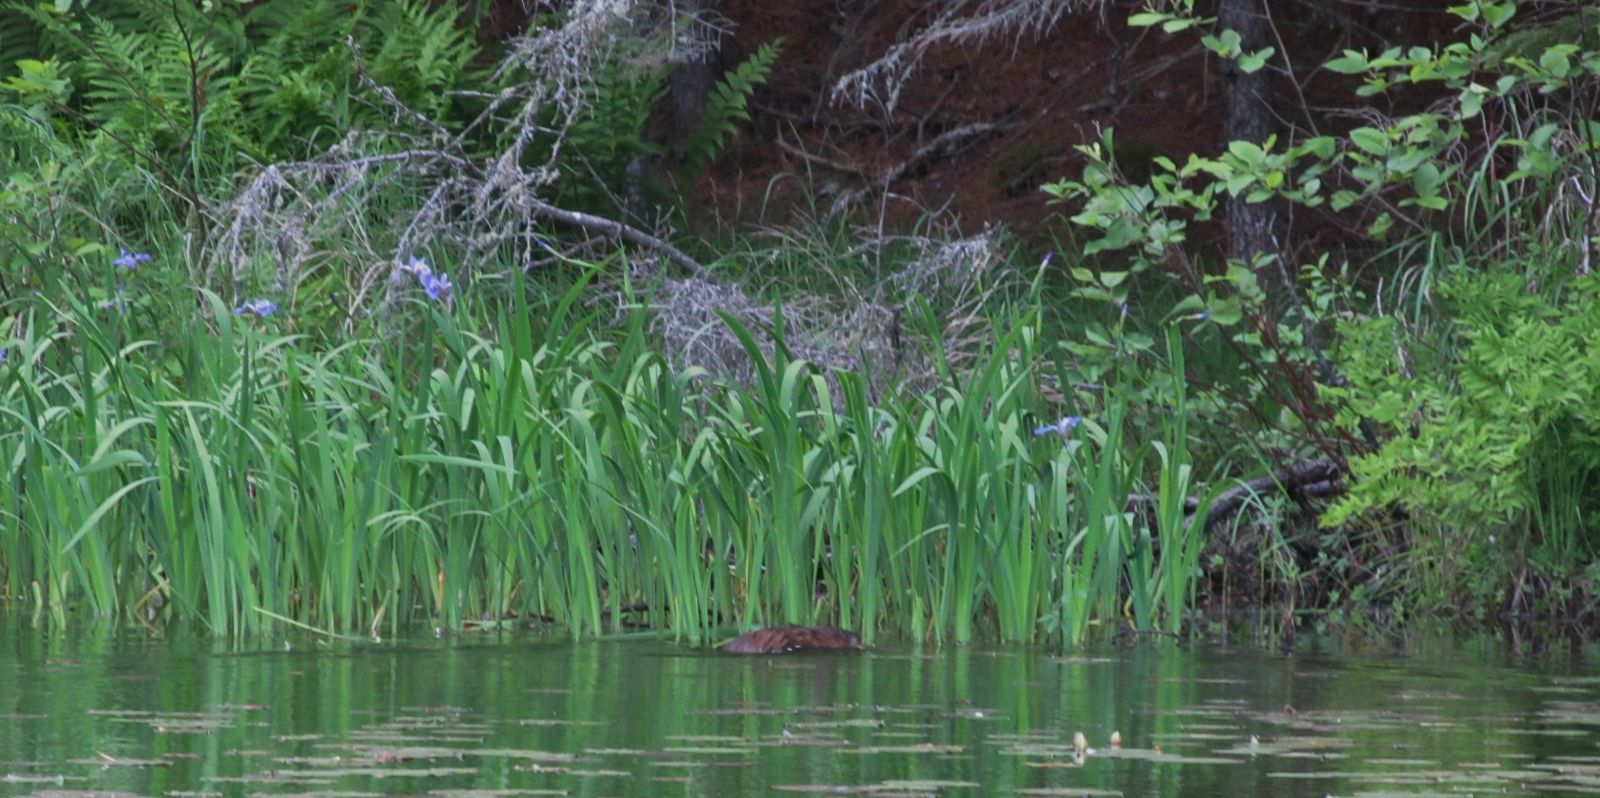 The River Otter, with Iris Plants in the background